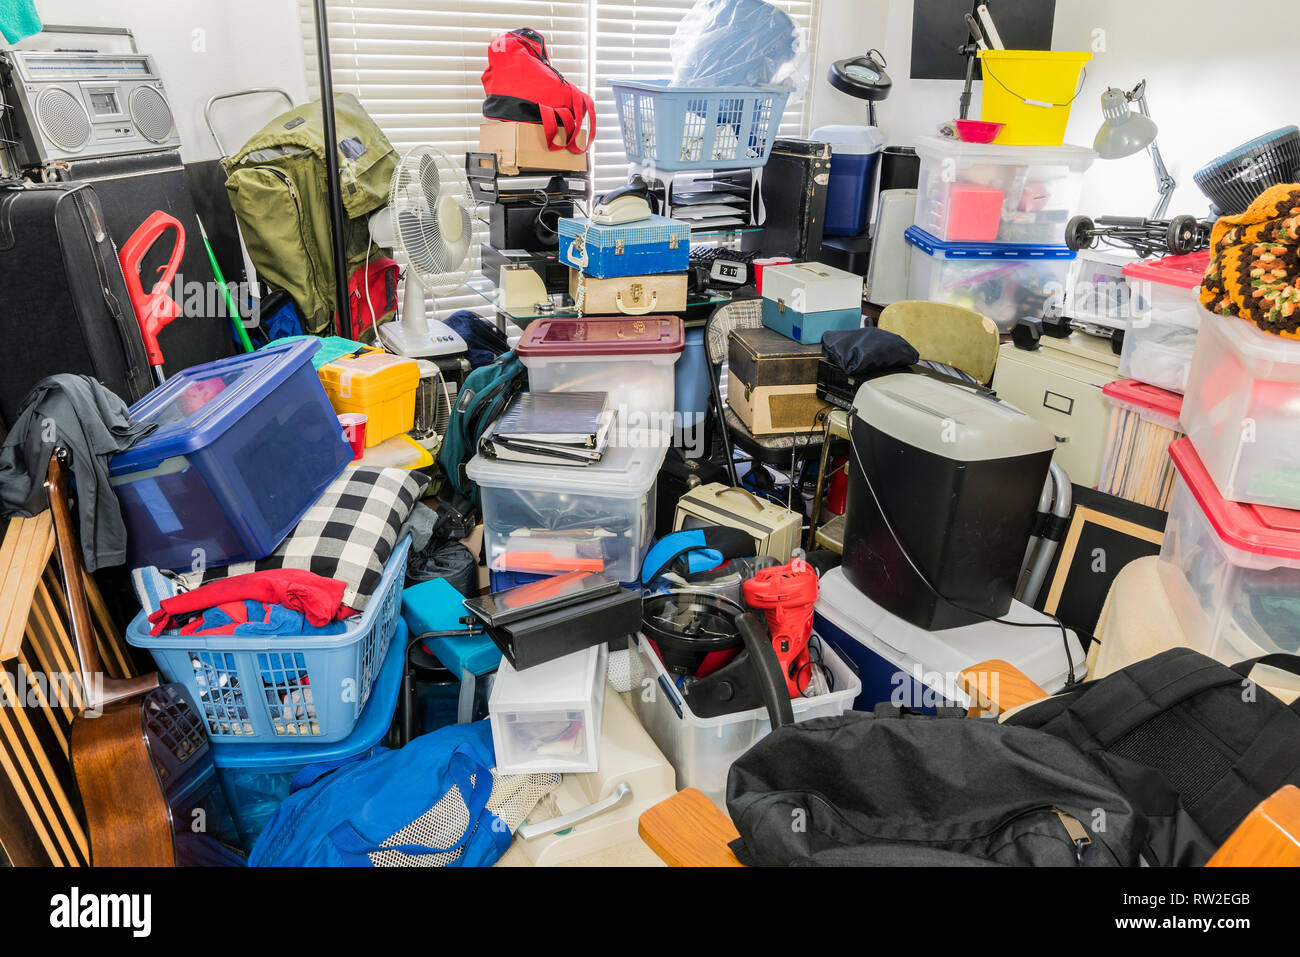 Hoarder room packed with stored boxes, electronics, files, business equipment and household items. - Stock Image